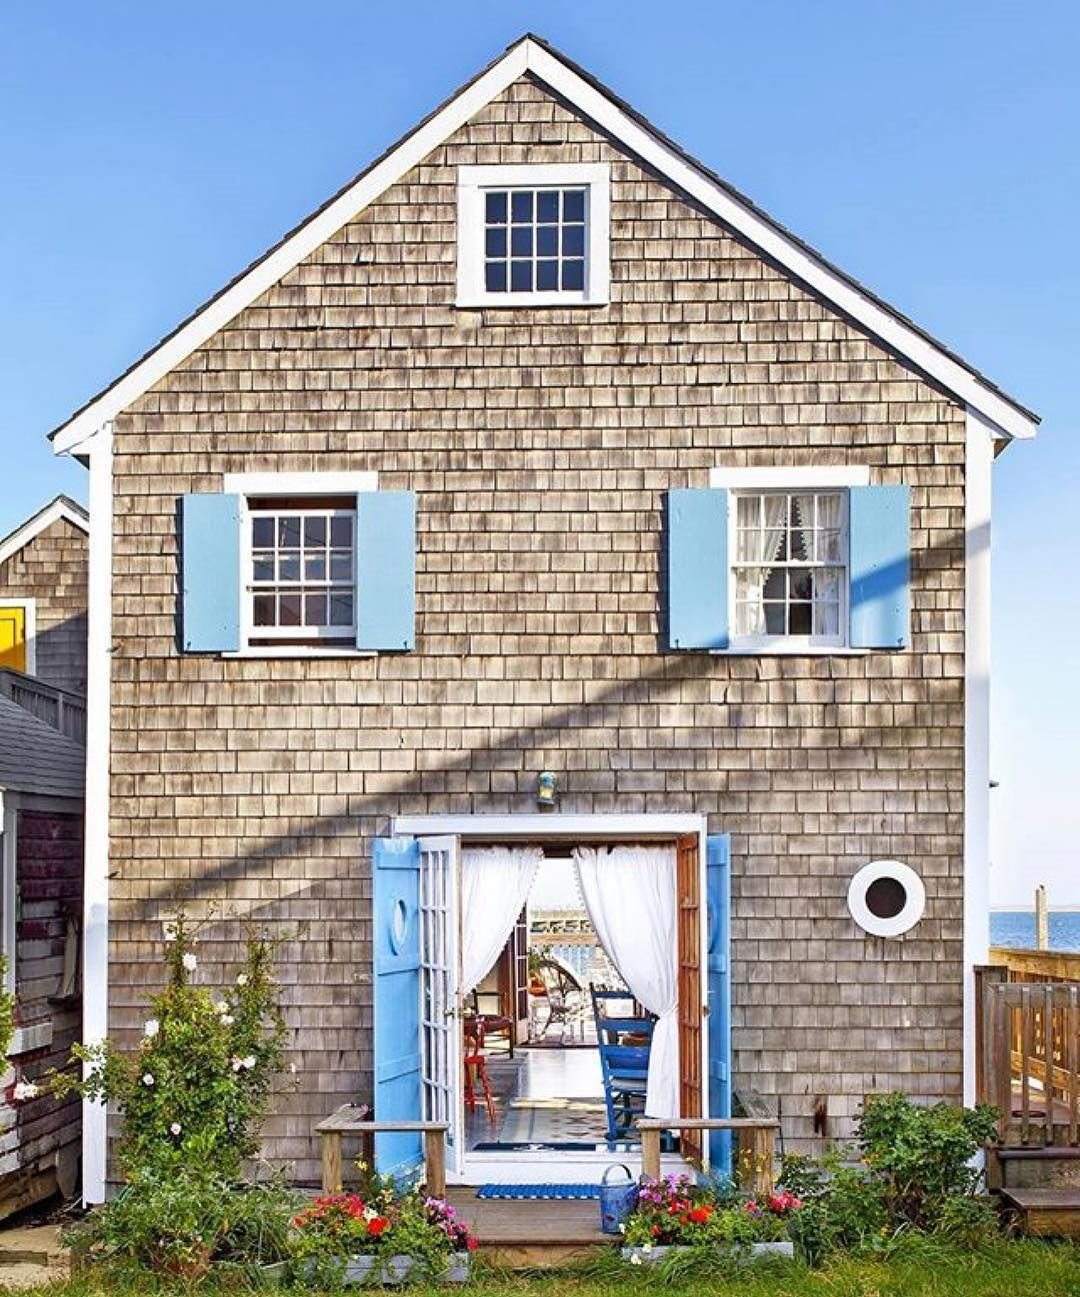 Pin By Little Yellow Cottage On Cozy Cottage Living: Pin By Little Yellow Cottage On ***Curb Appeal***